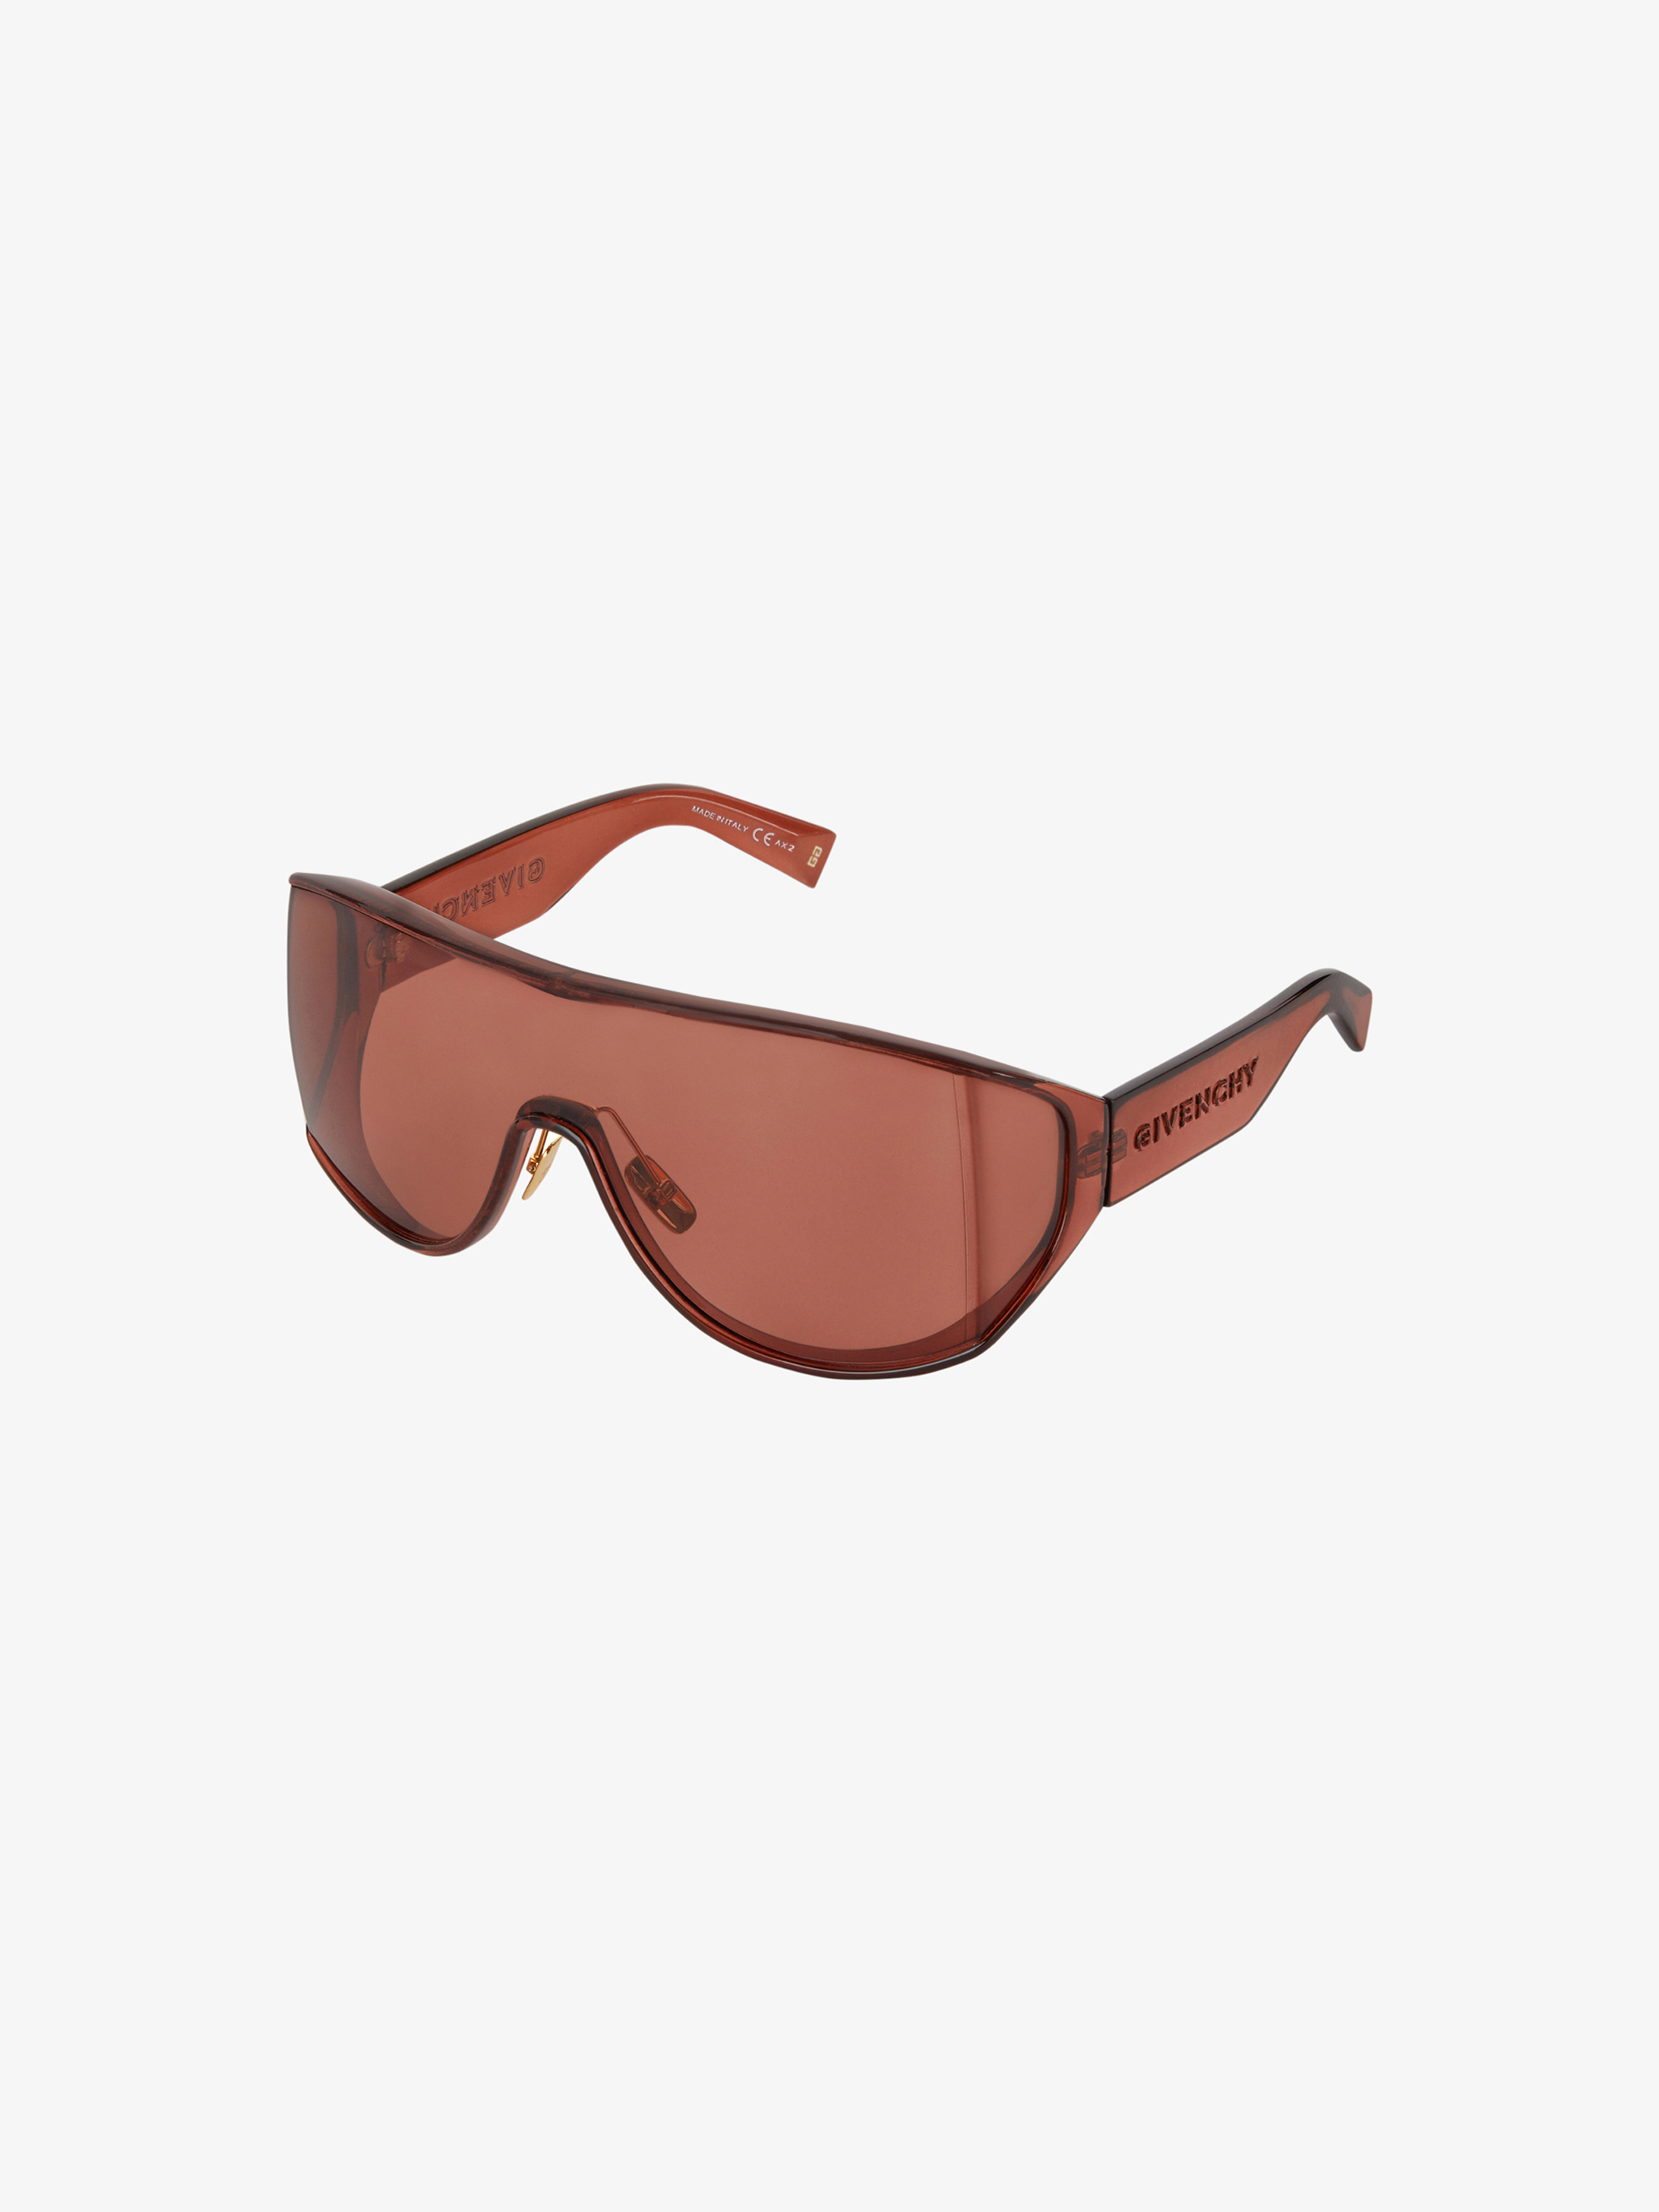 Gvisible unisex sunnies